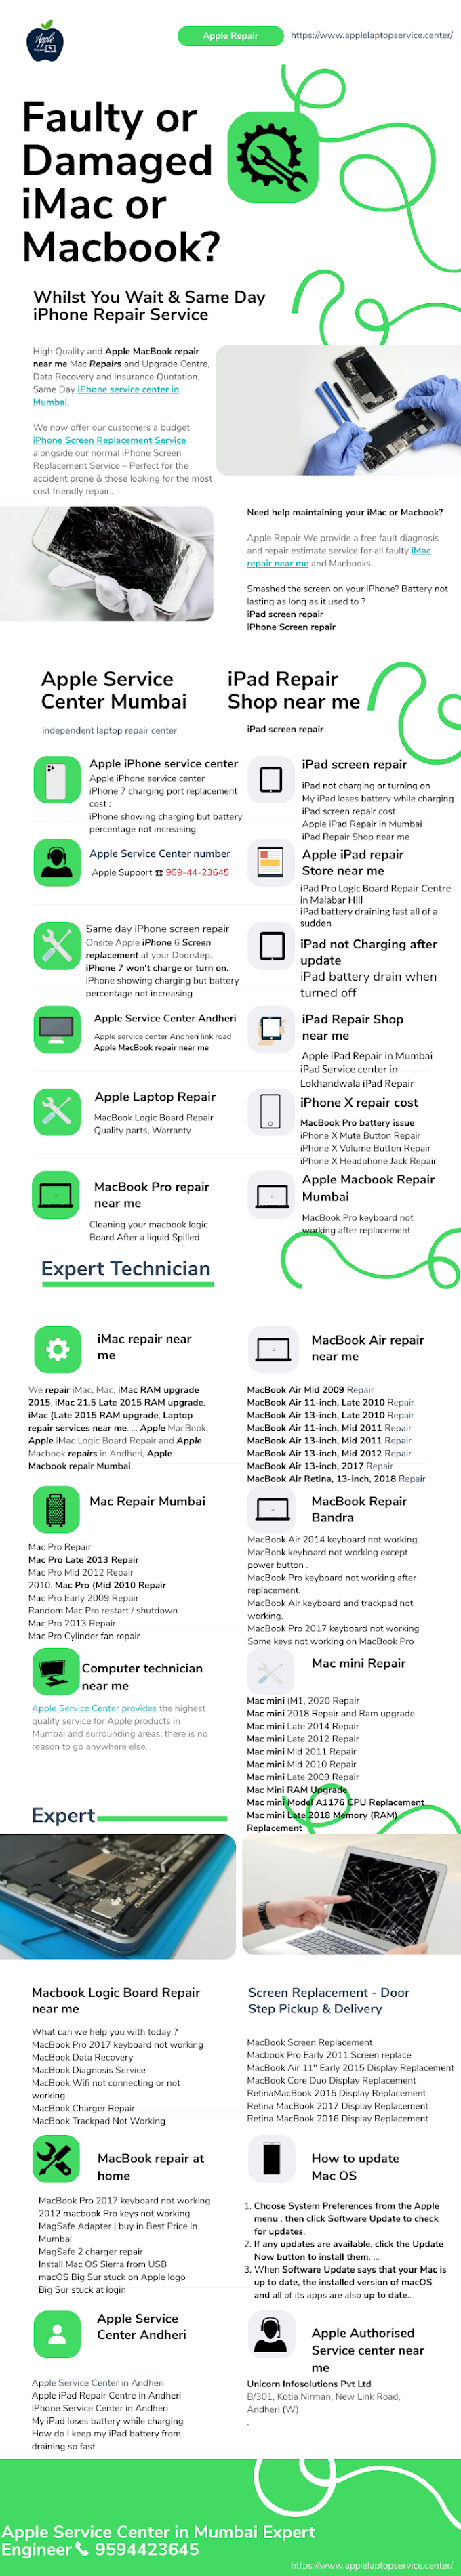 Apple Service Centre in Mumbai | Call Expert Technician